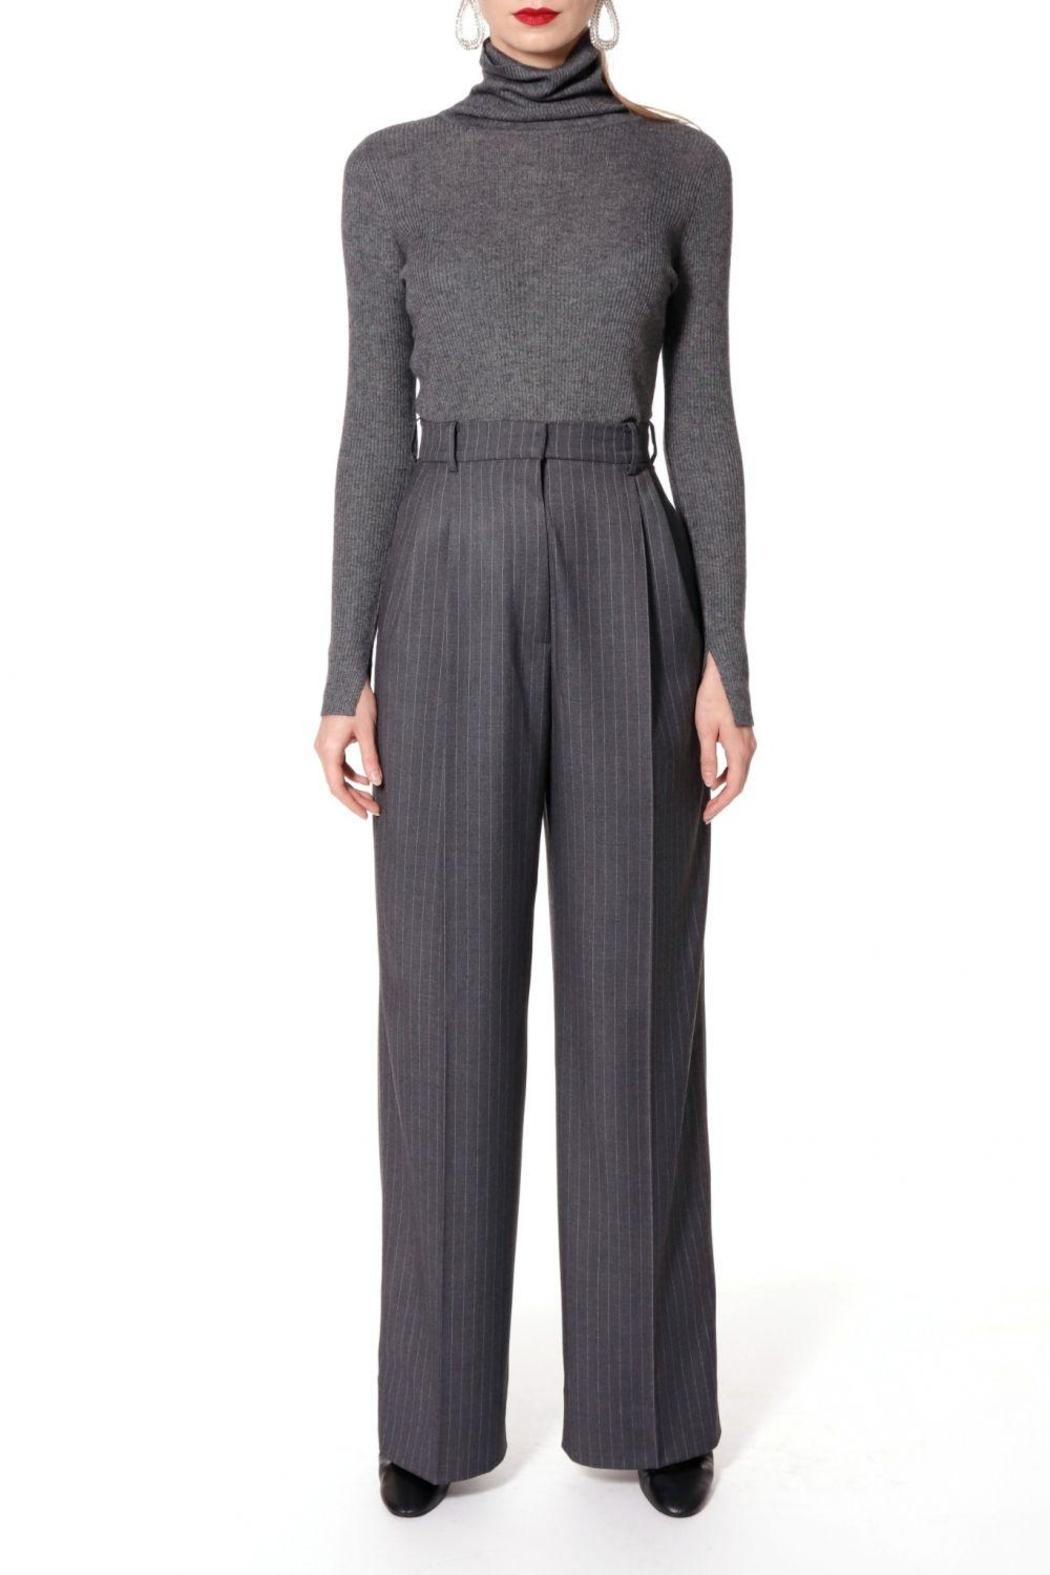 AGGI Trousers Gwen Downtown Grey - Front Cropped Image